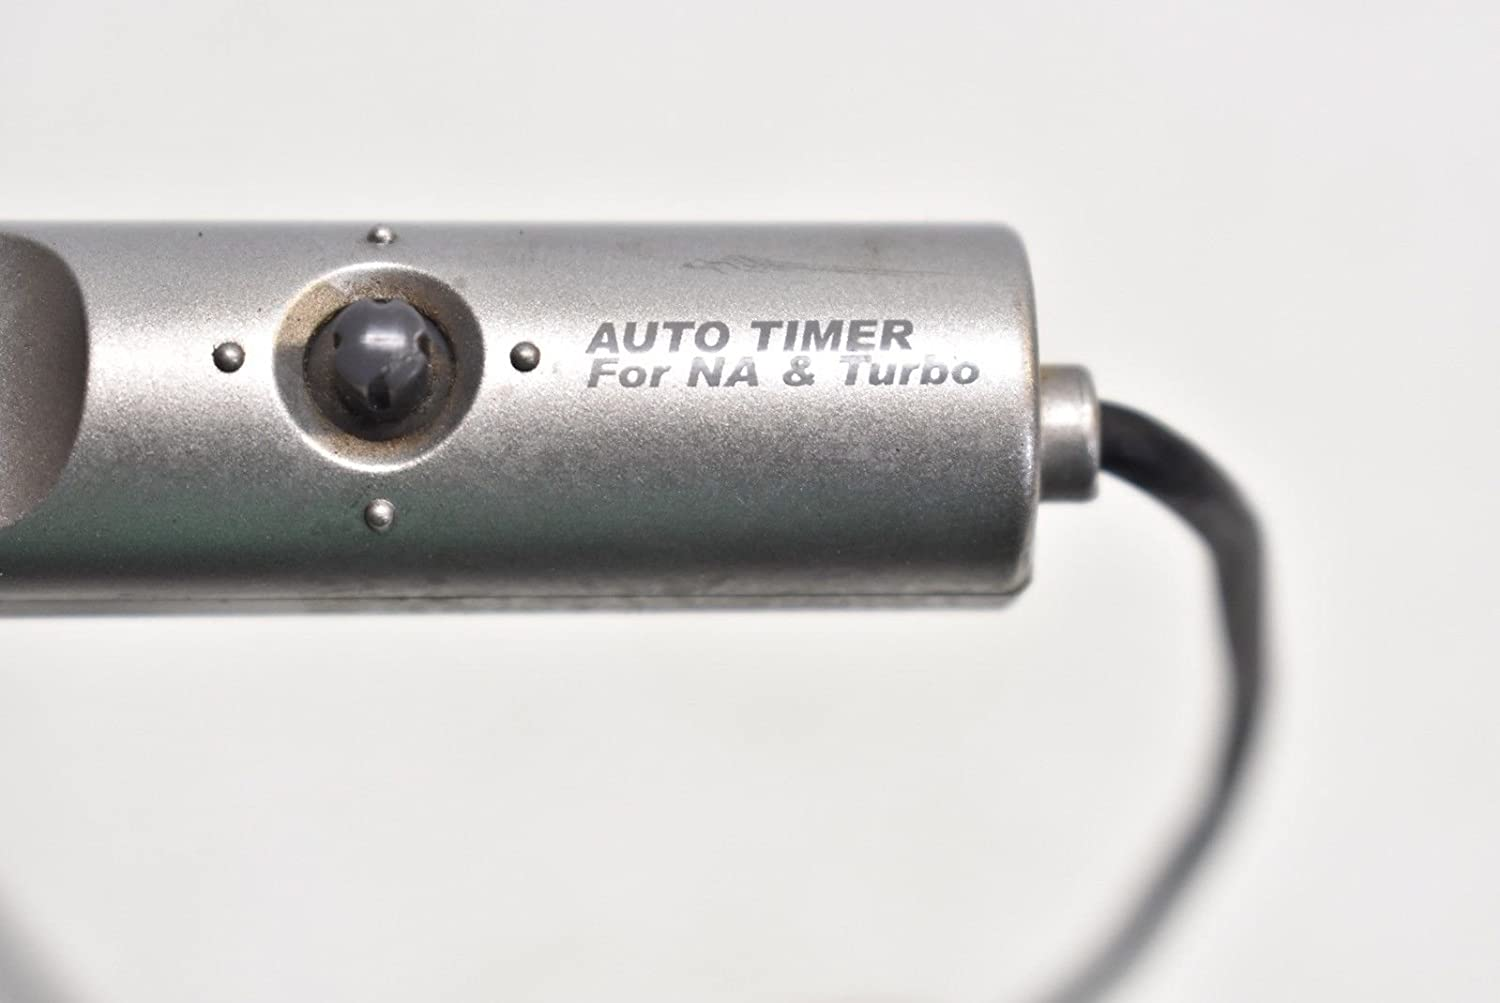 Colorful Apexi Auto Timer For Na & Turbo Gift - Electrical System ...